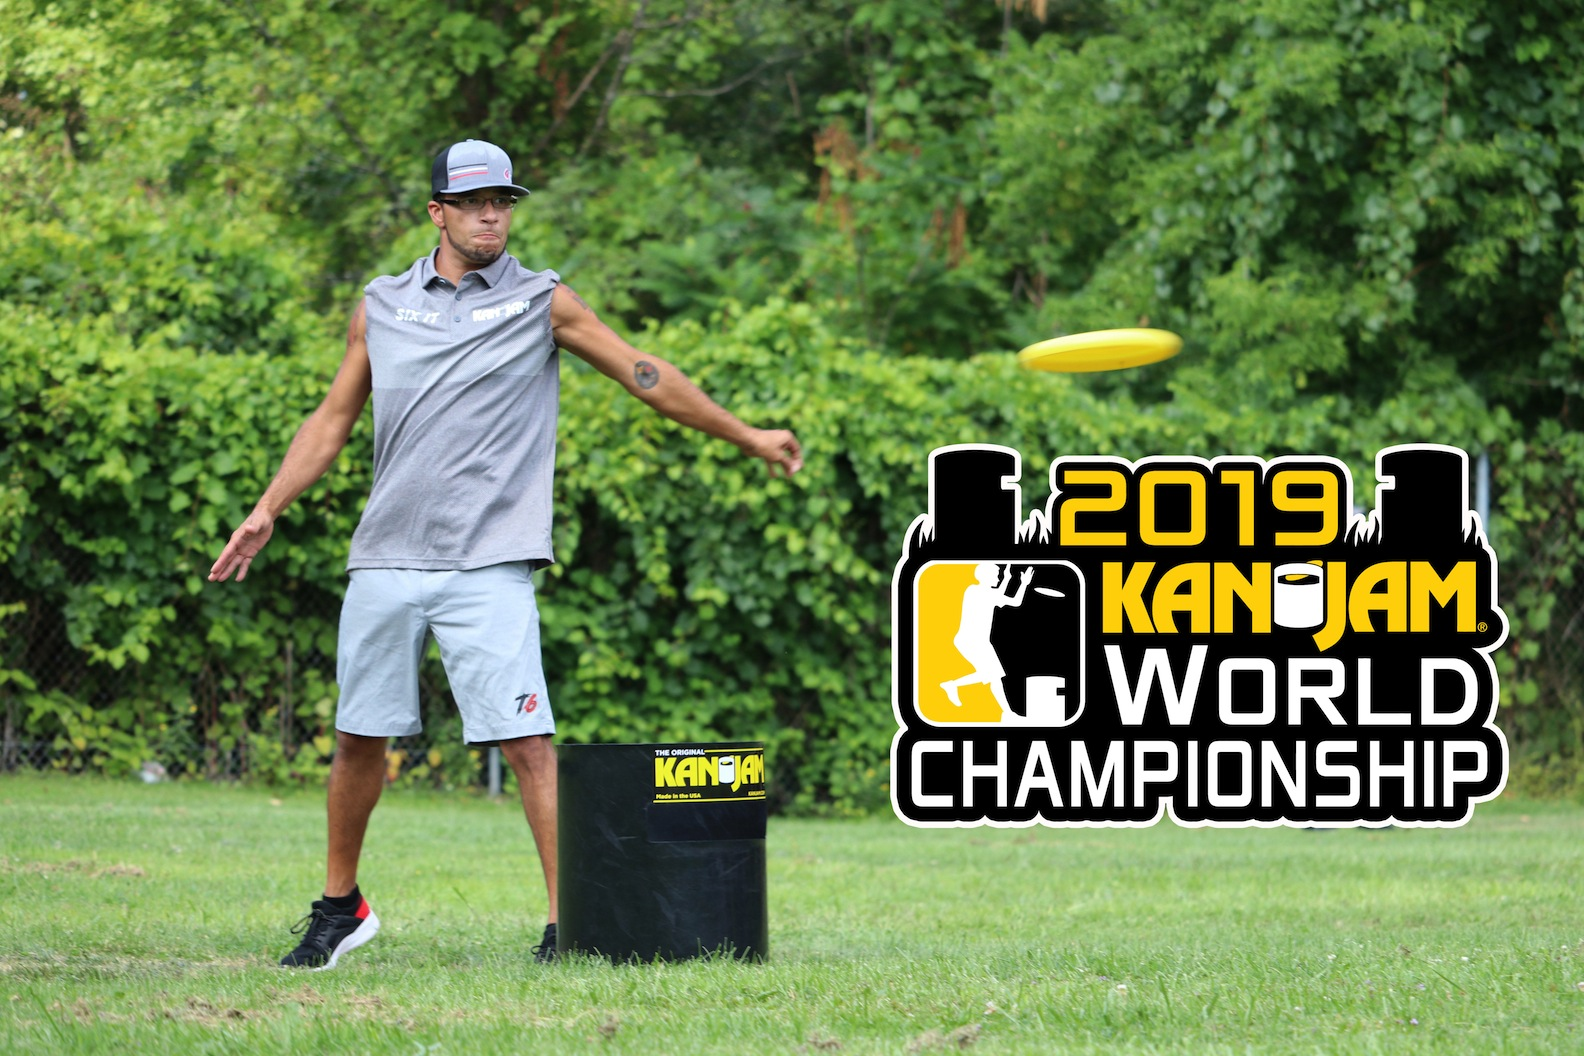 Rochester KanJam player Sam Caquias. Here, Caquias throws the disc in a playoff game for `Team 6 it` at last year's KanJam World Championship.